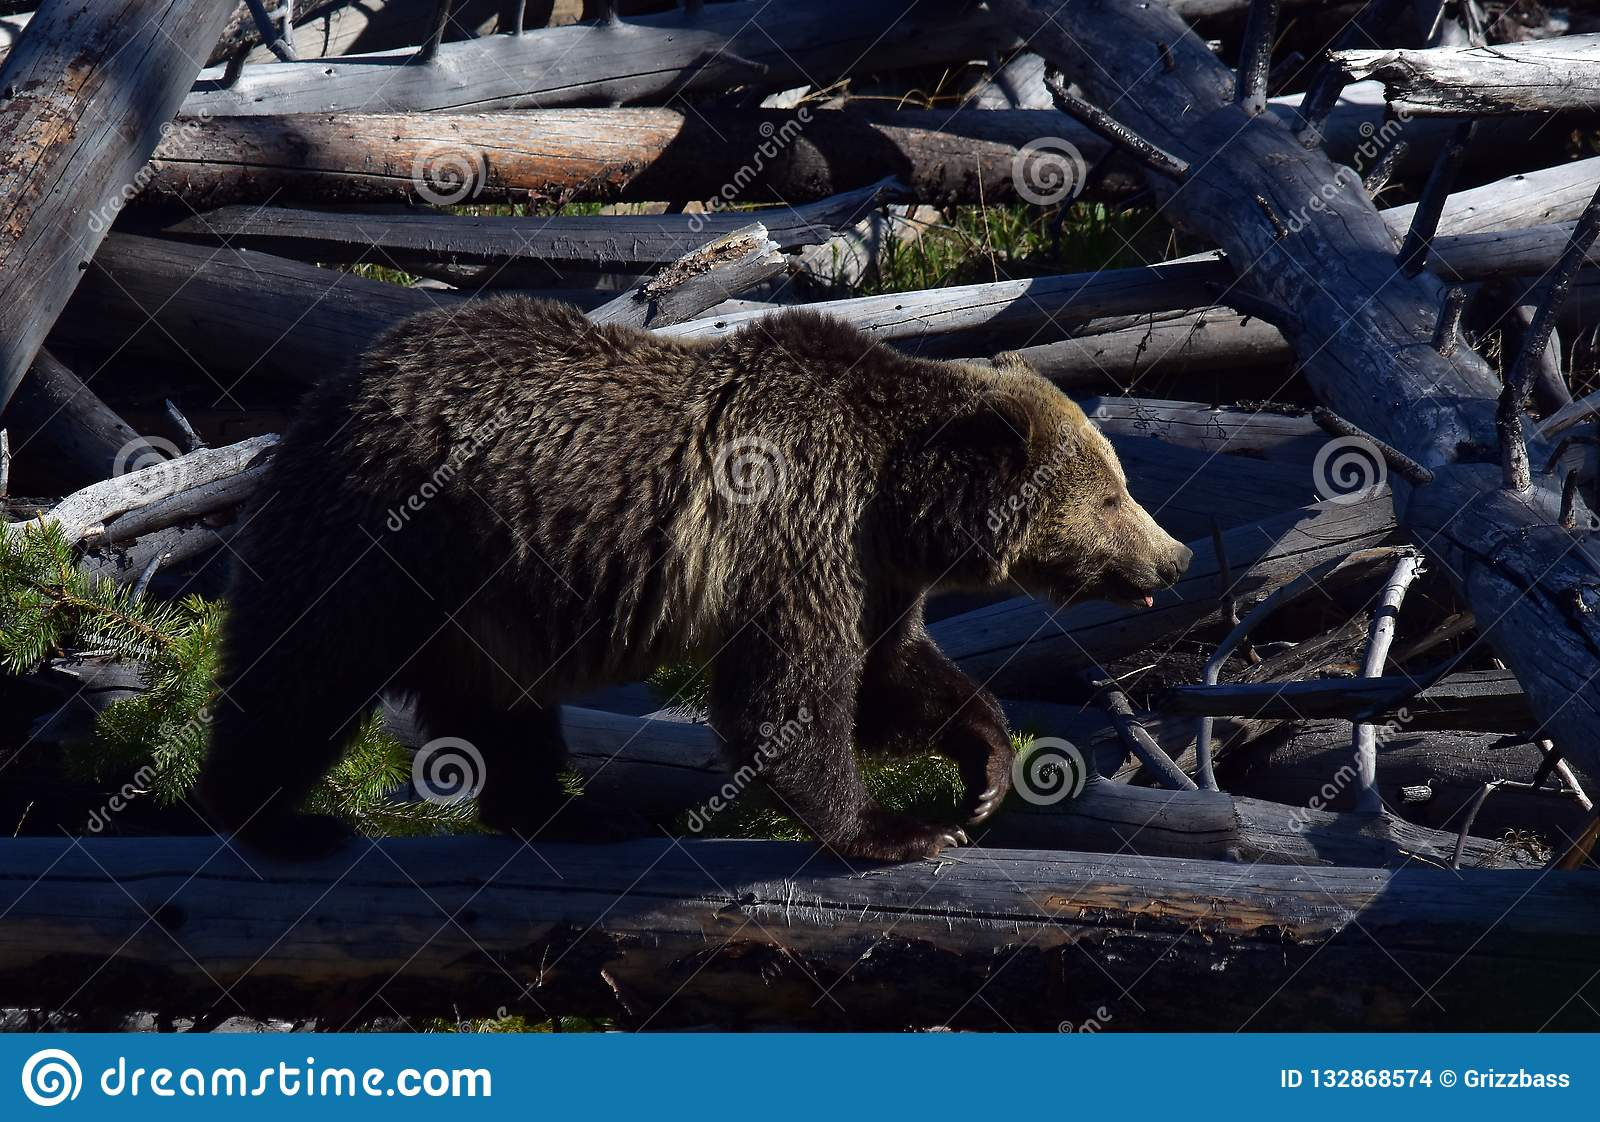 Grizzly crossing the logs